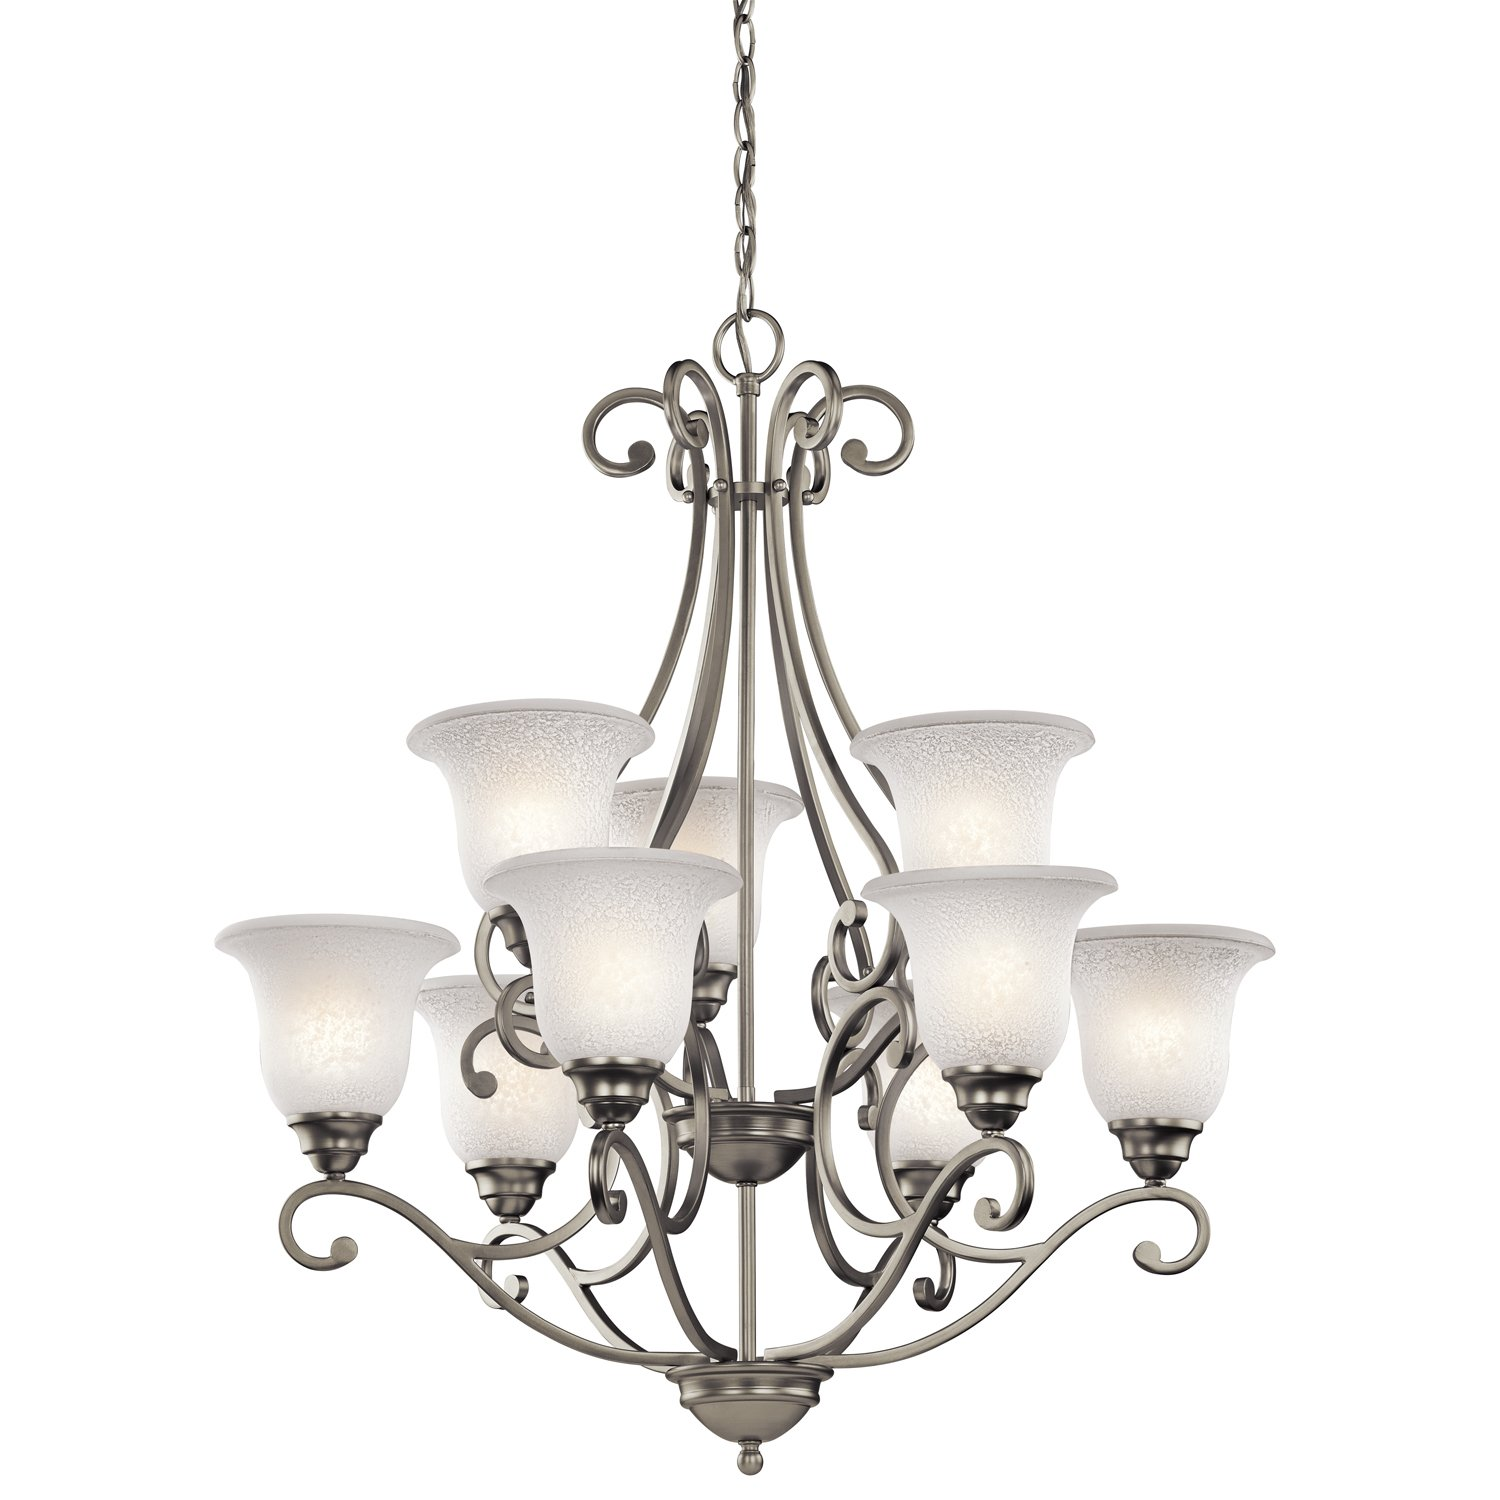 light chandelier silver pn pimlico elstead candle products nickel